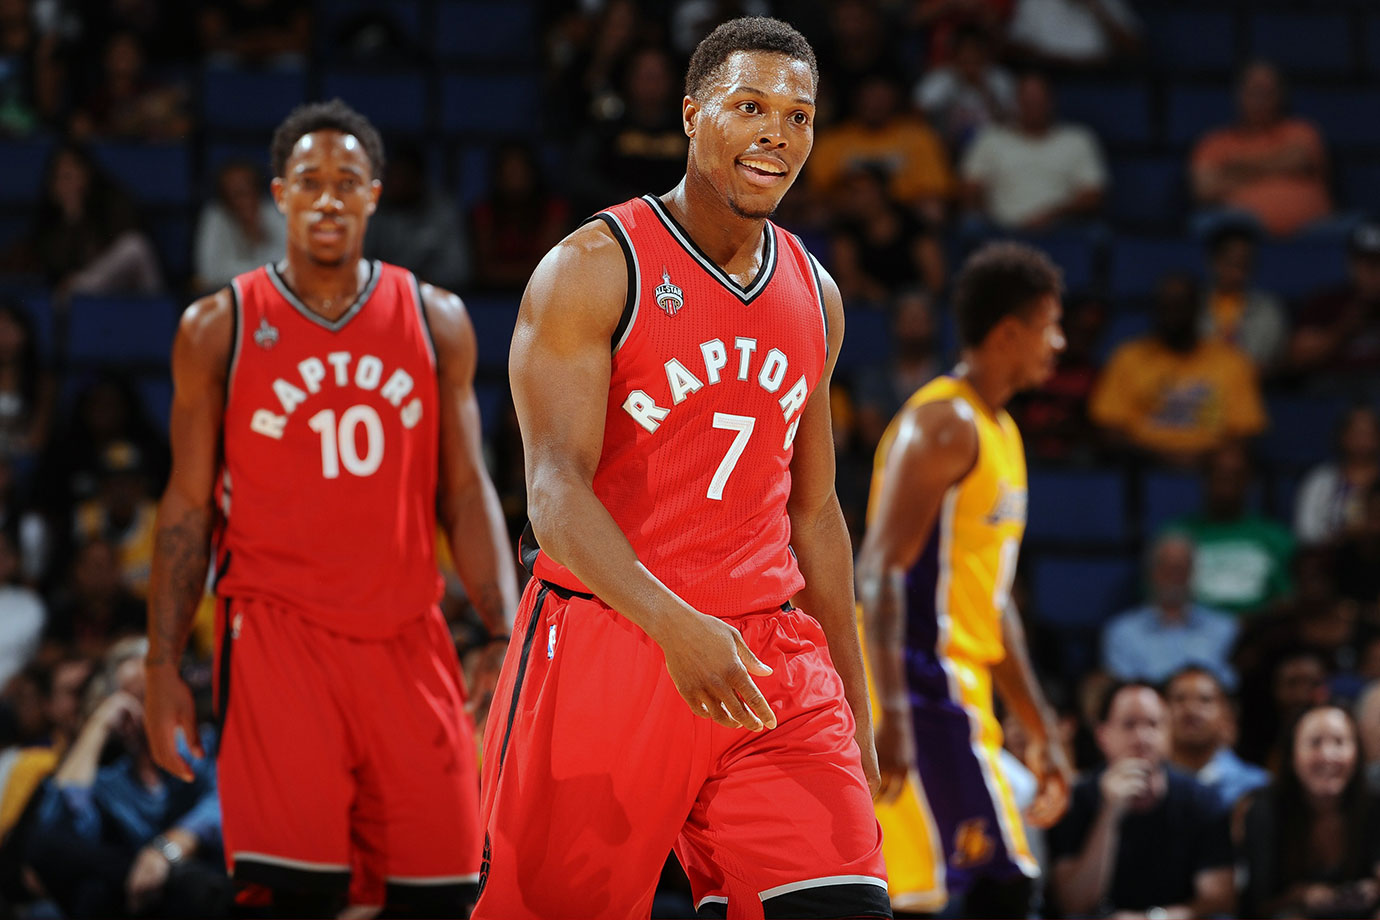 Kyle Lowry is in the best shape of his life, and as we all know, that's always the reason a team finally wins a championship.